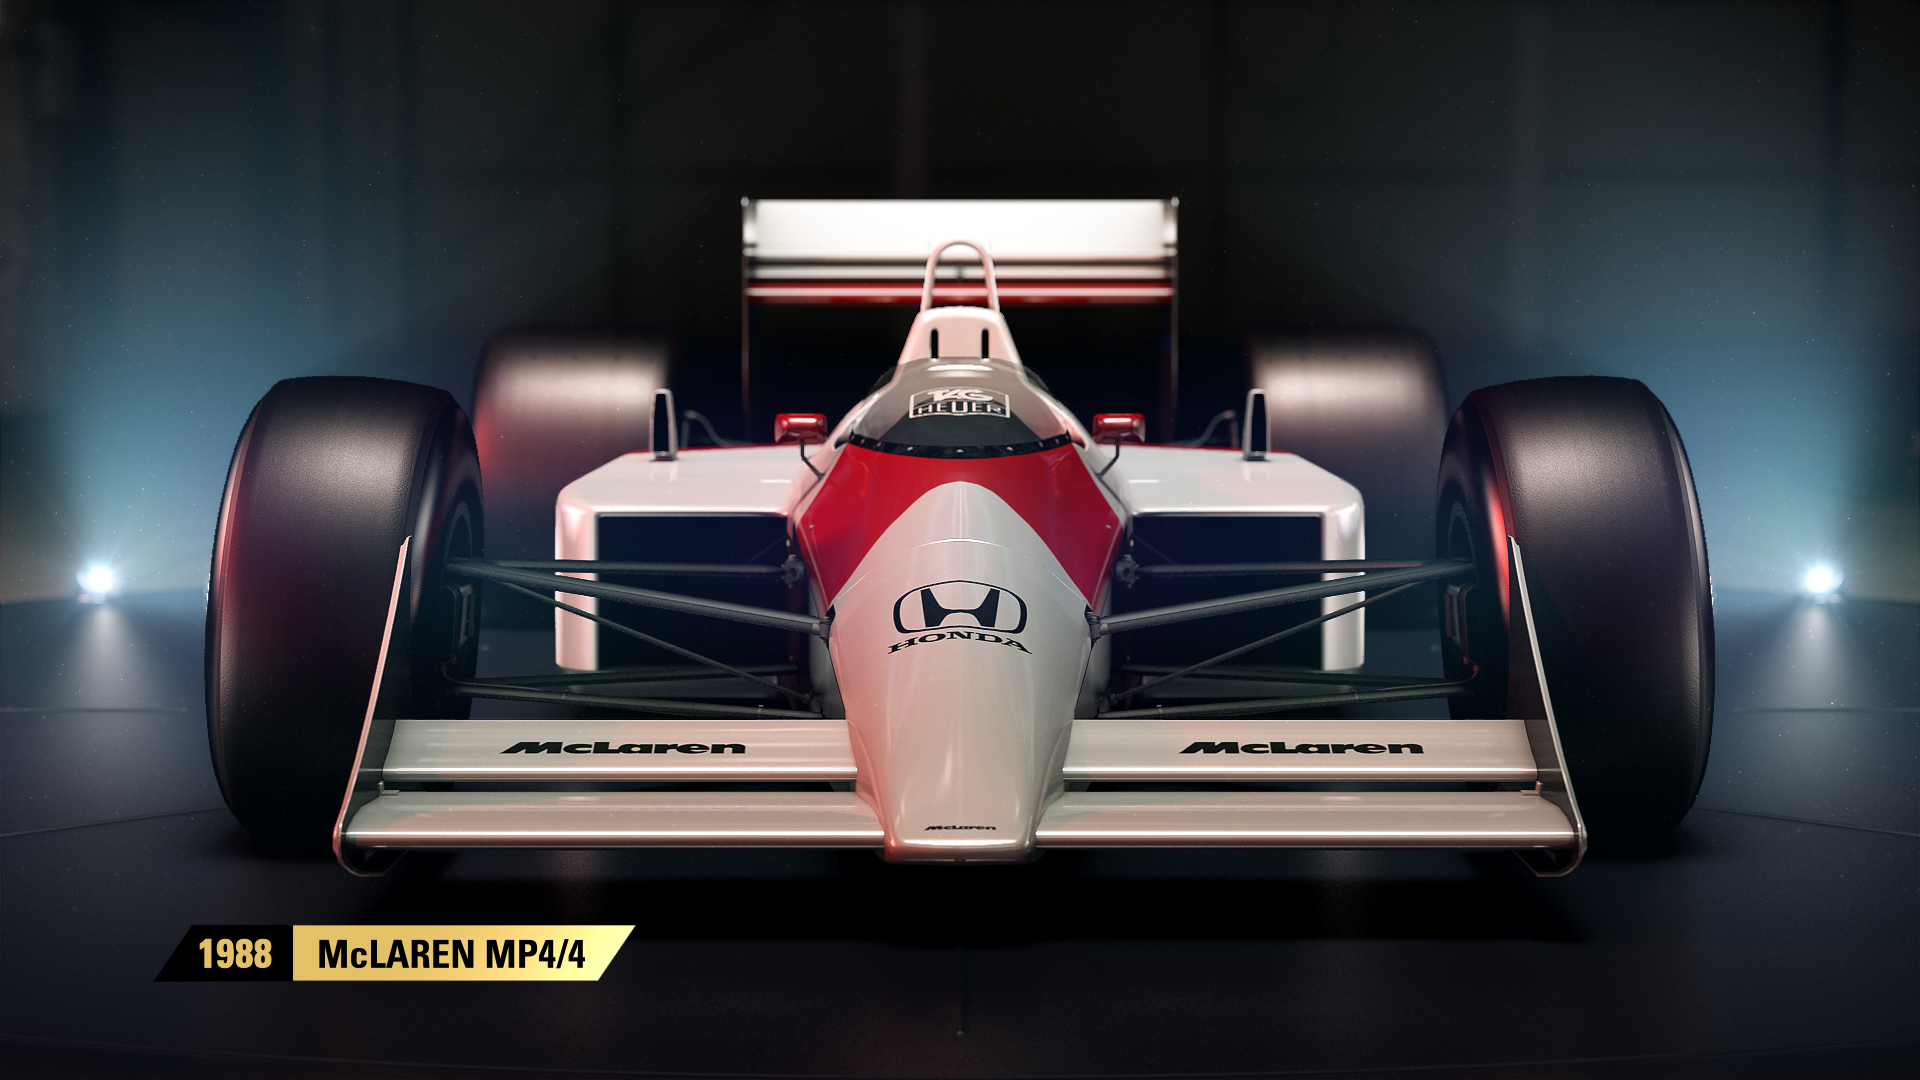 You can drive Senna's 1988 McLaren and Mansell's 1992 Williams in F1 2017